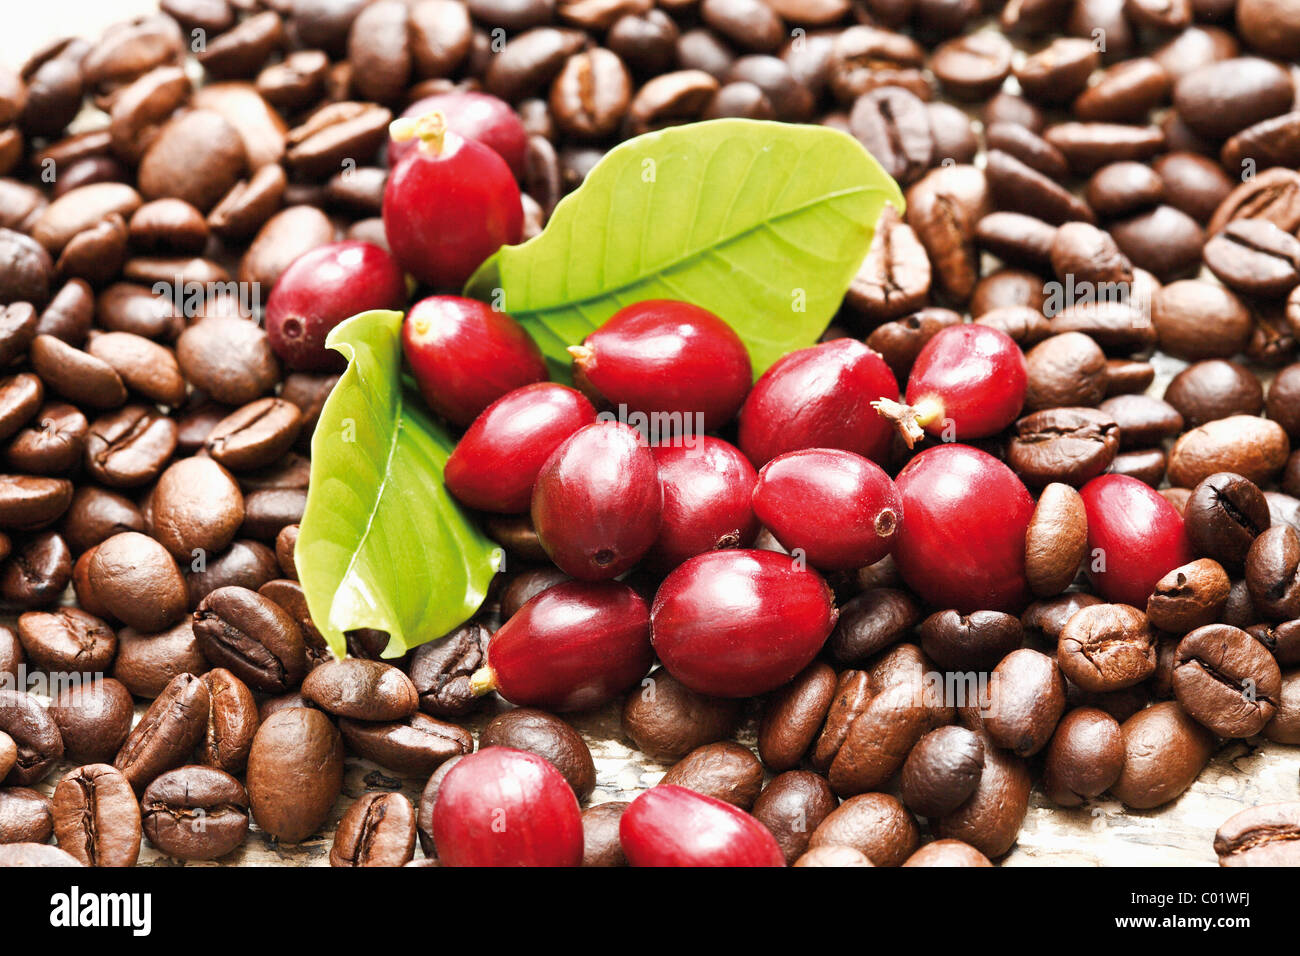 Coffee Arabica News Red Coffee Berries Coffea Arabica On A Bed Of Coffee